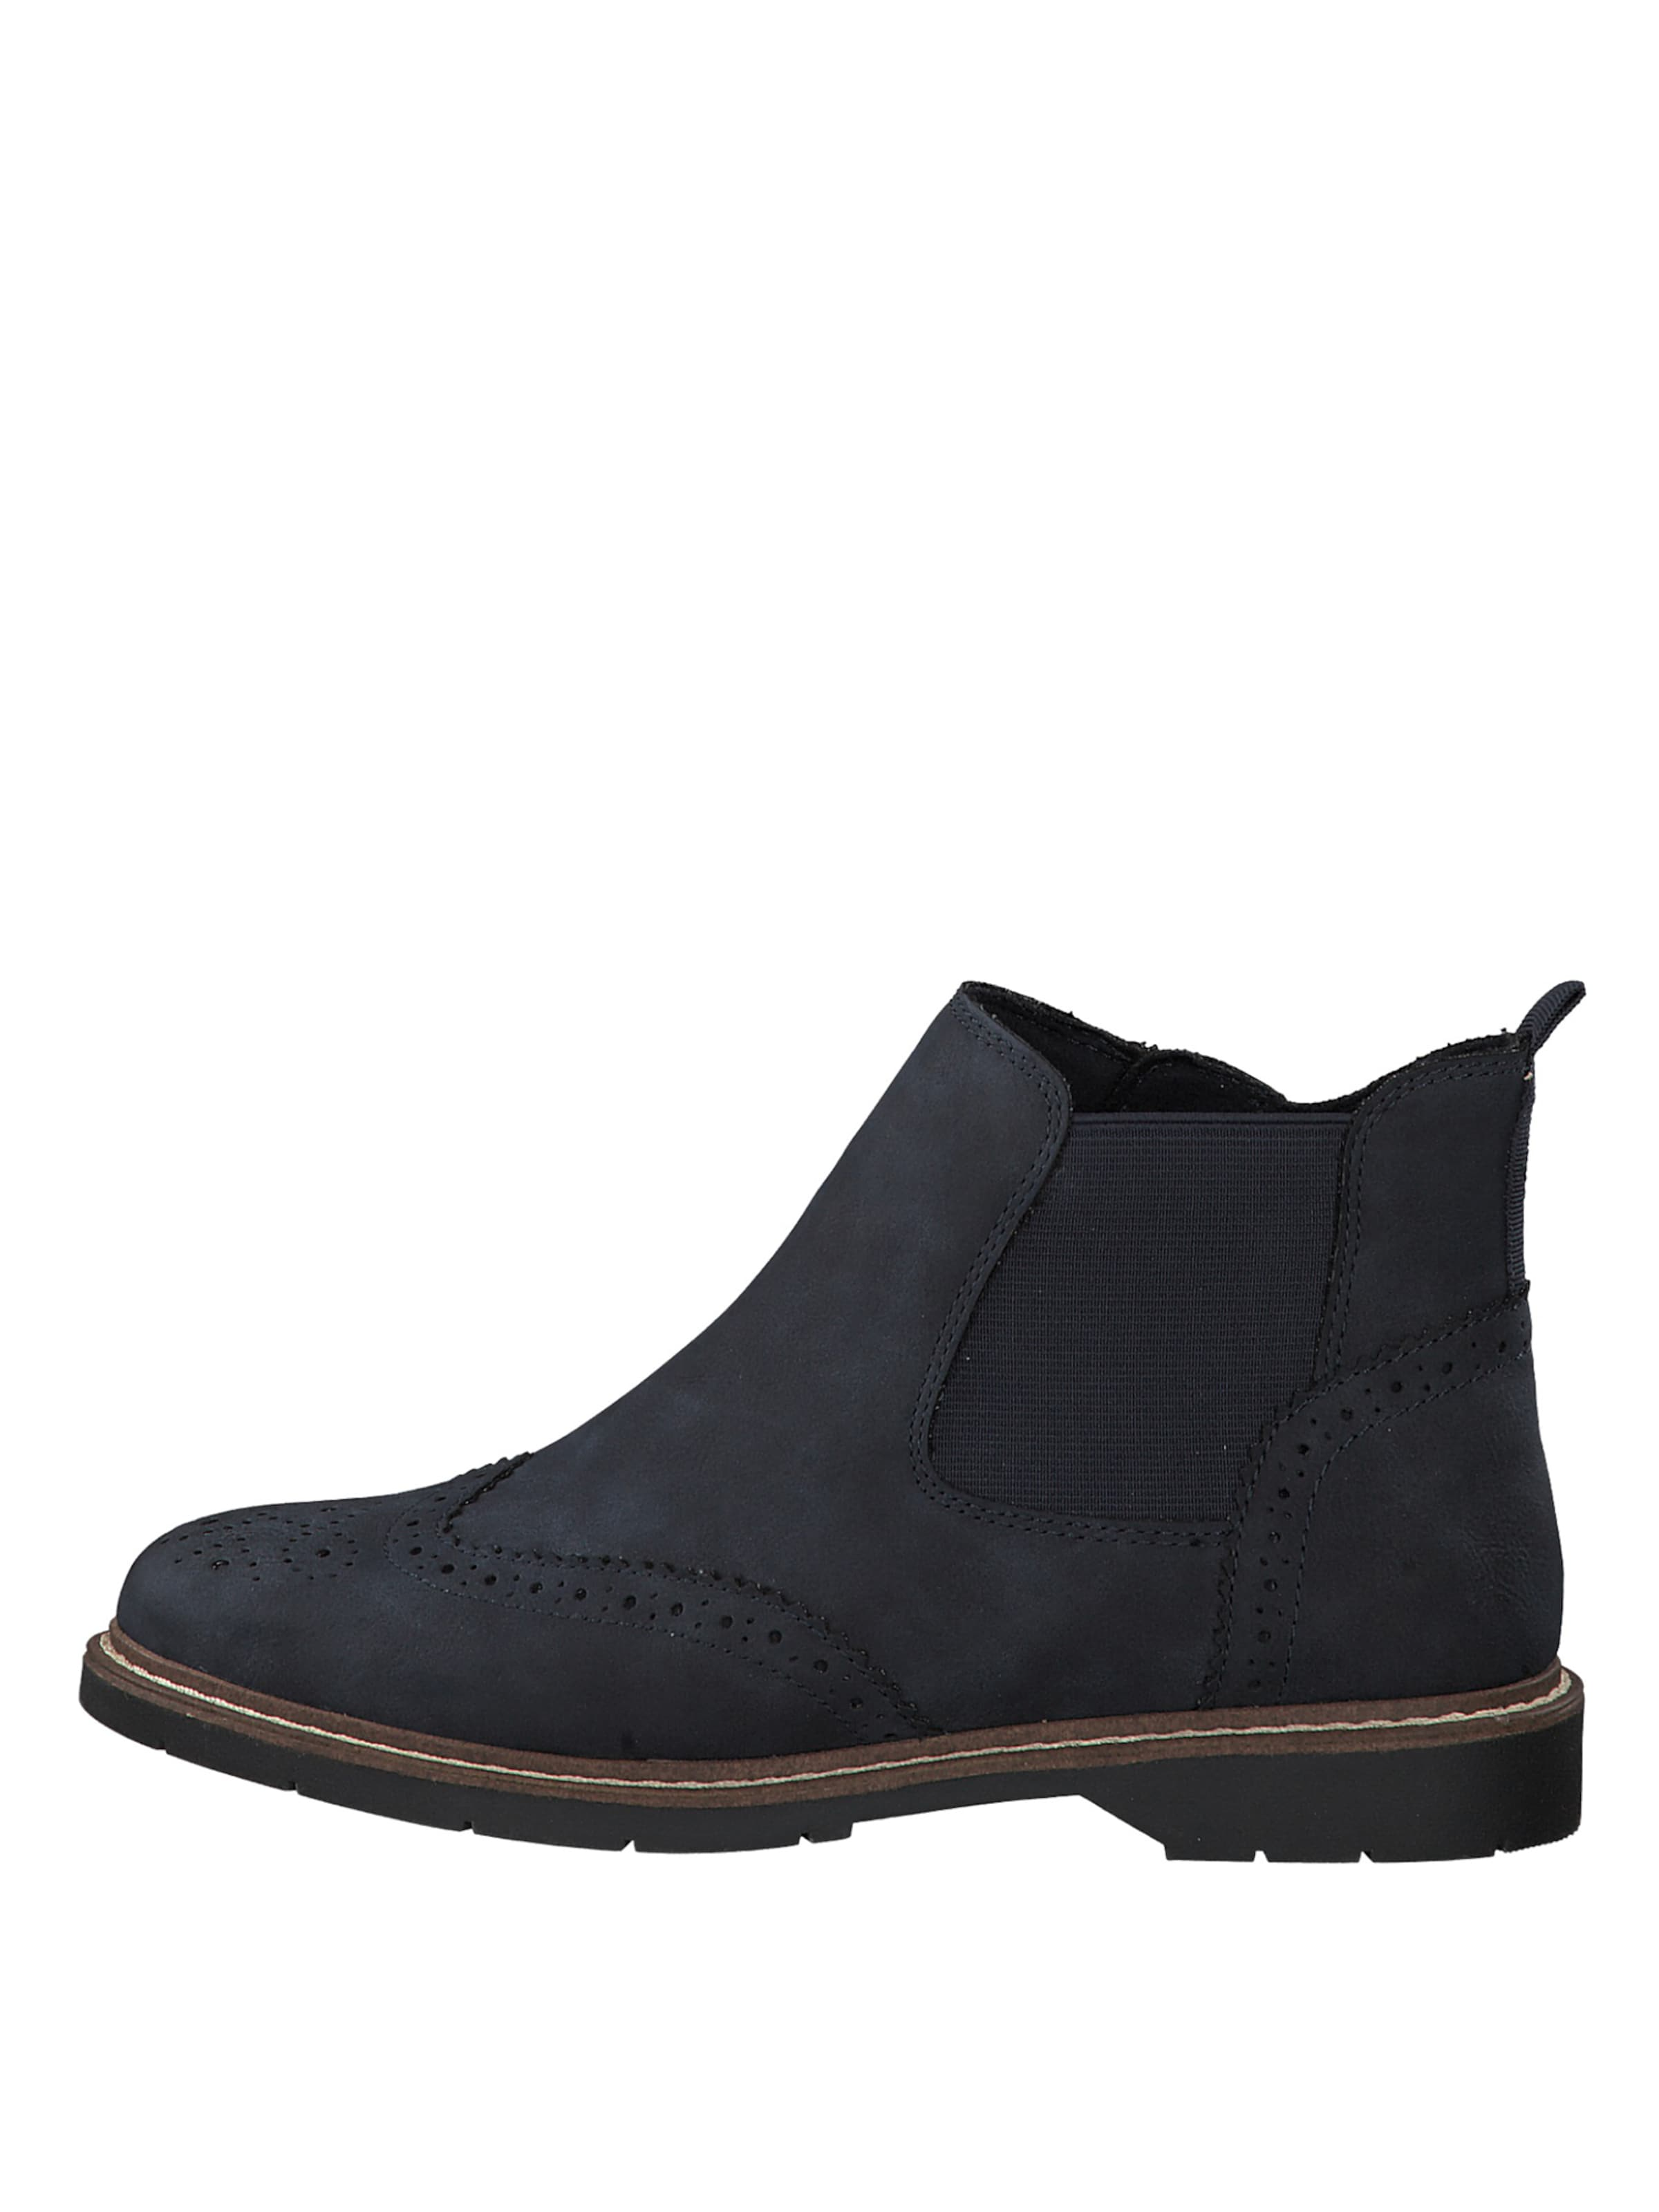 S Boots In oliver Chelsea Navy f6Ybg7y